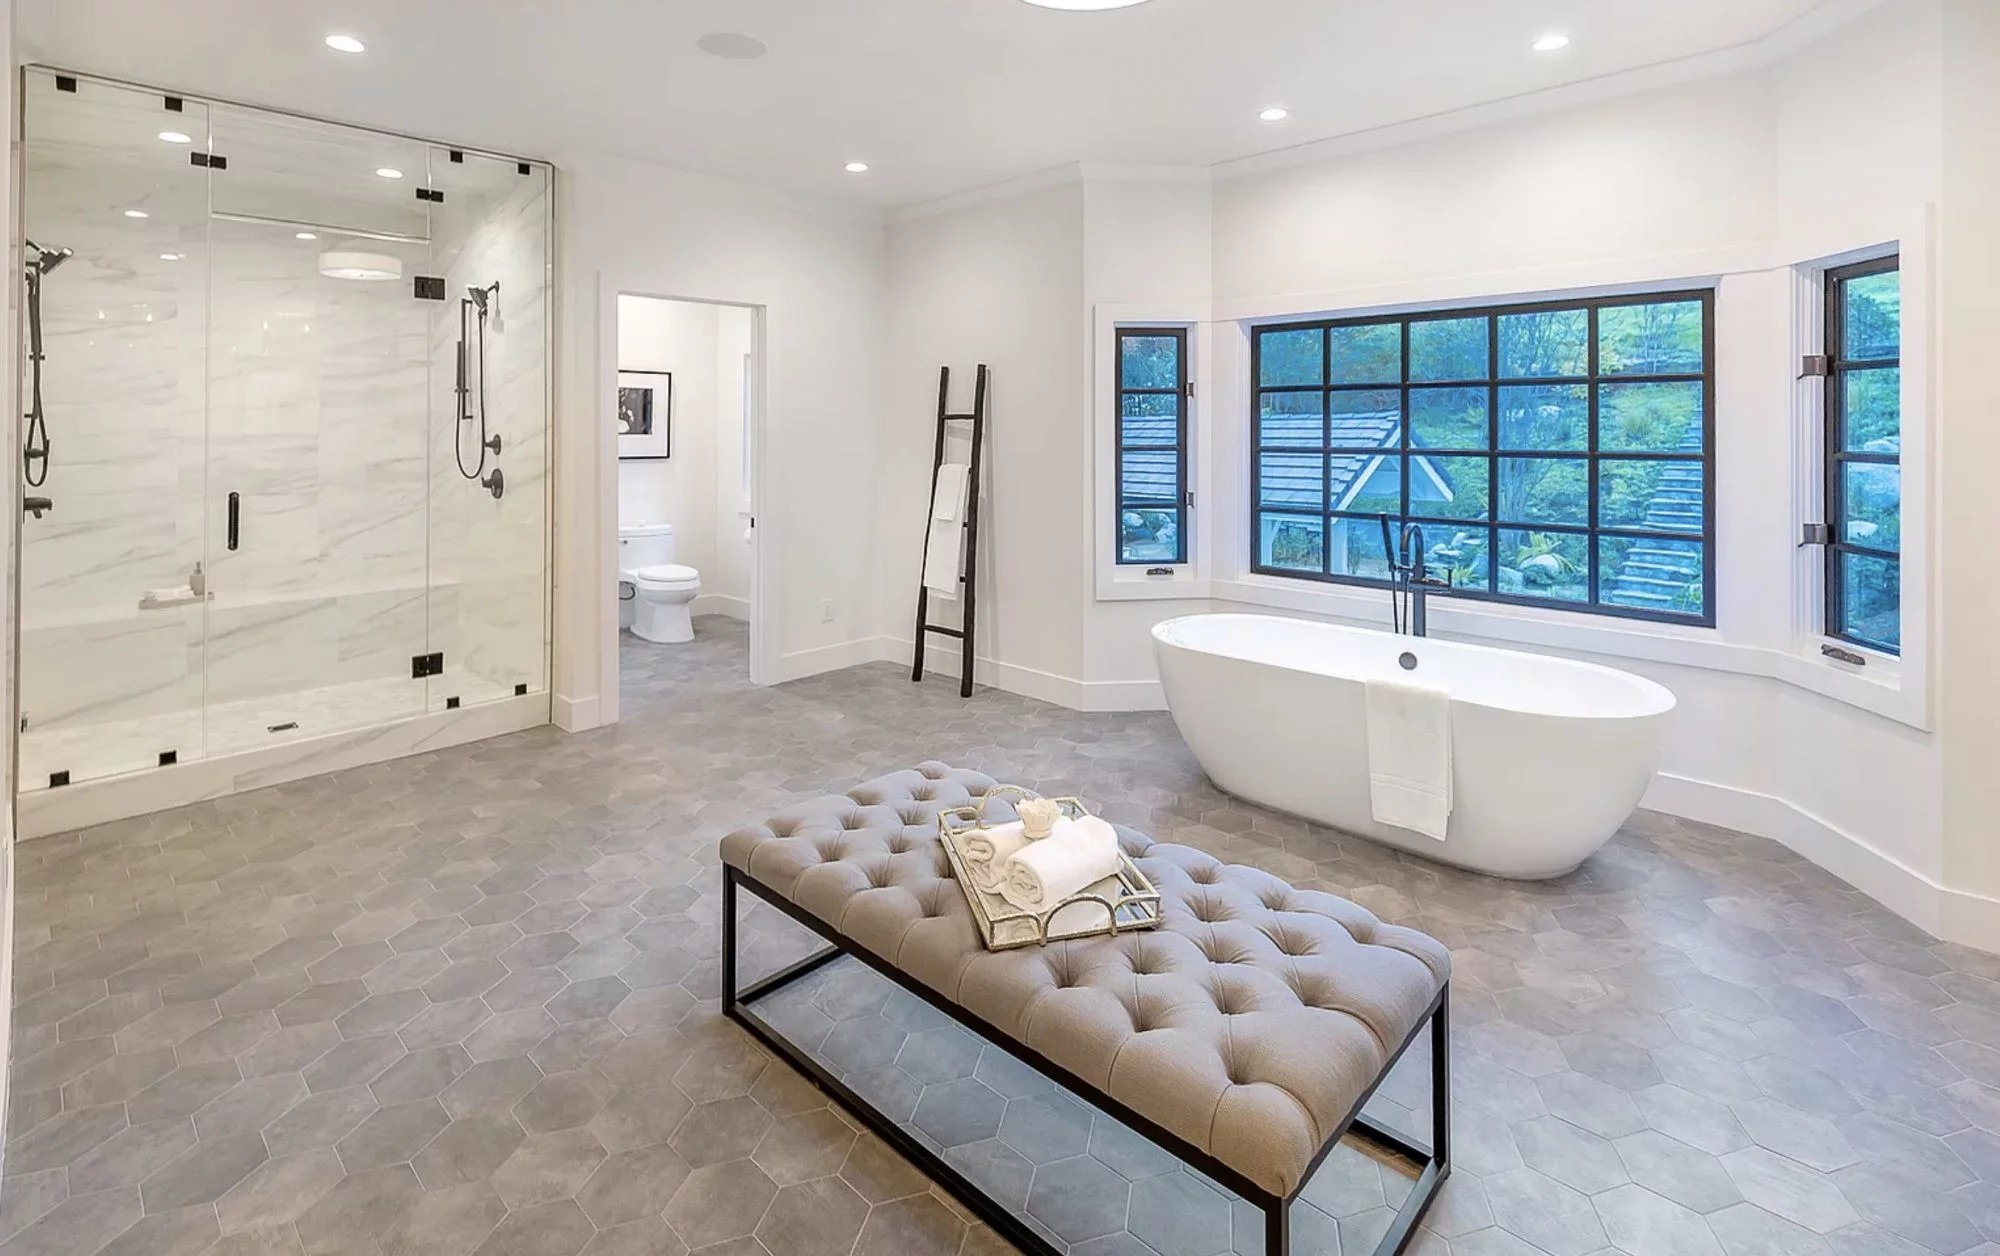 Baño / The Grosby Group